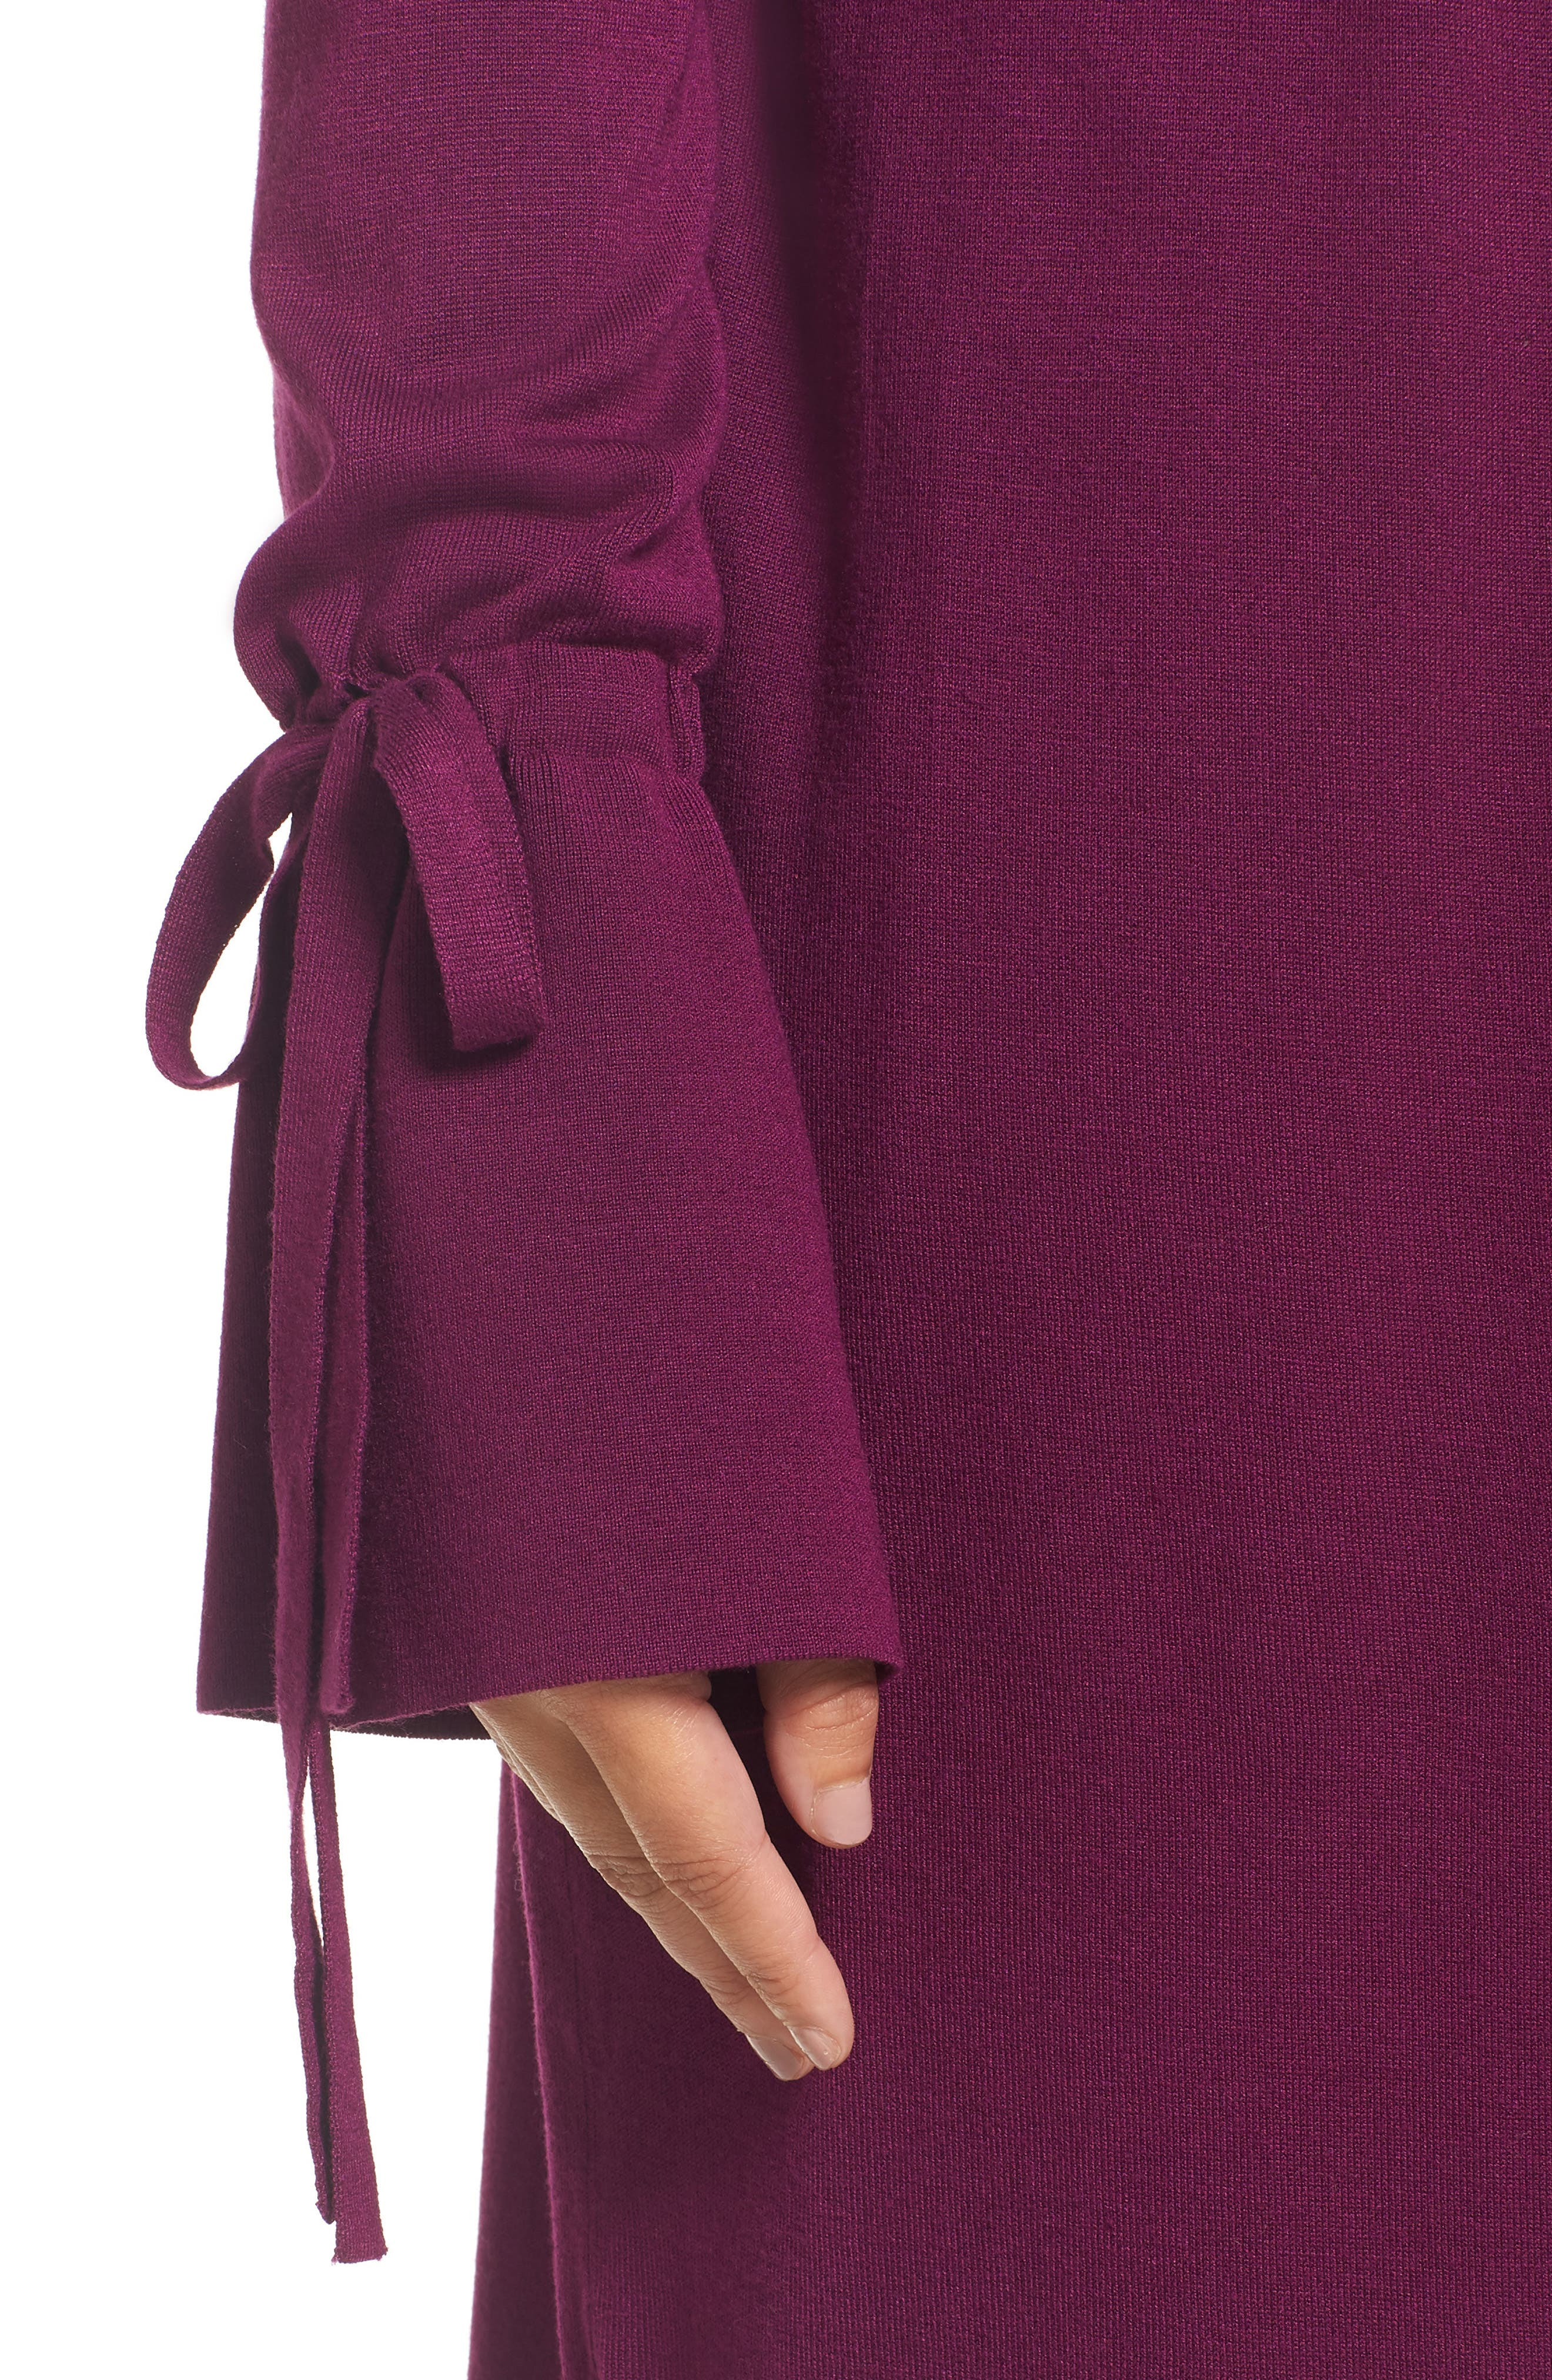 Lightweight Tie Sleeve Cardigan,                             Alternate thumbnail 4, color,                             Purple Dark